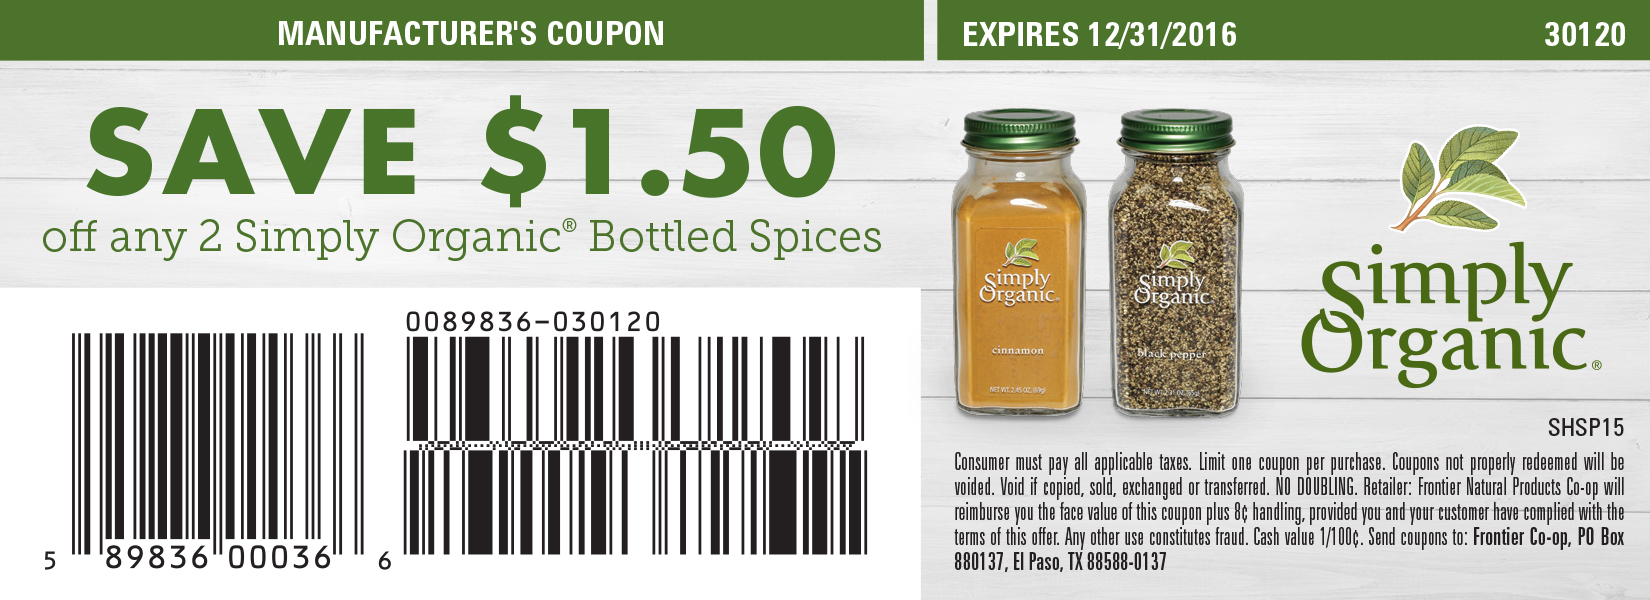 Save $1.50 off any 2 Simply Organic<sup>&reg;</sup> Bottled Spices